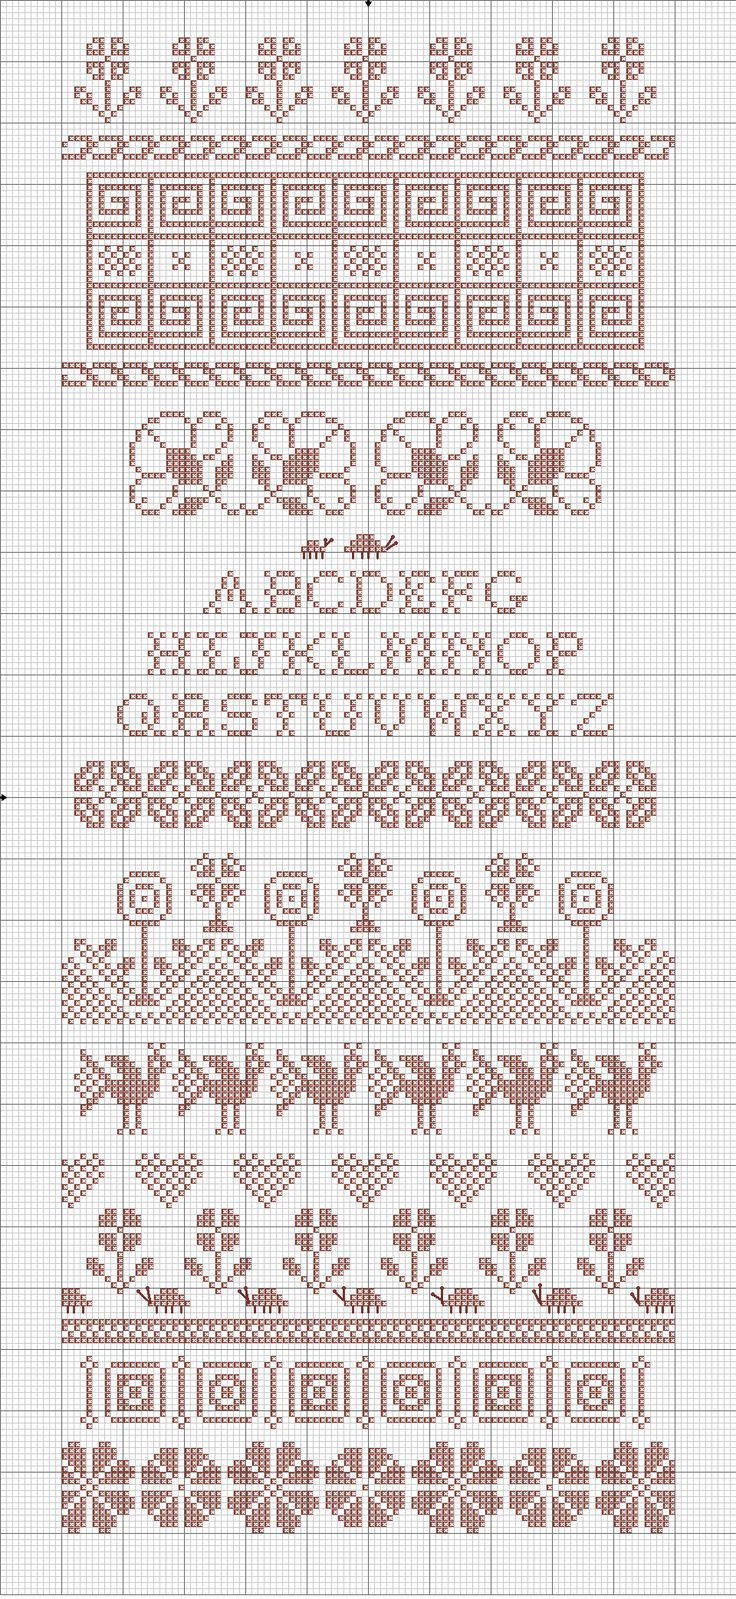 Freebie: Spring Plantings single color sampler  Pick your favorite color and enjoy some Spring Plantings!   The design is released under my copyright for your personal stitching pleasure only, and not for any commercial use.